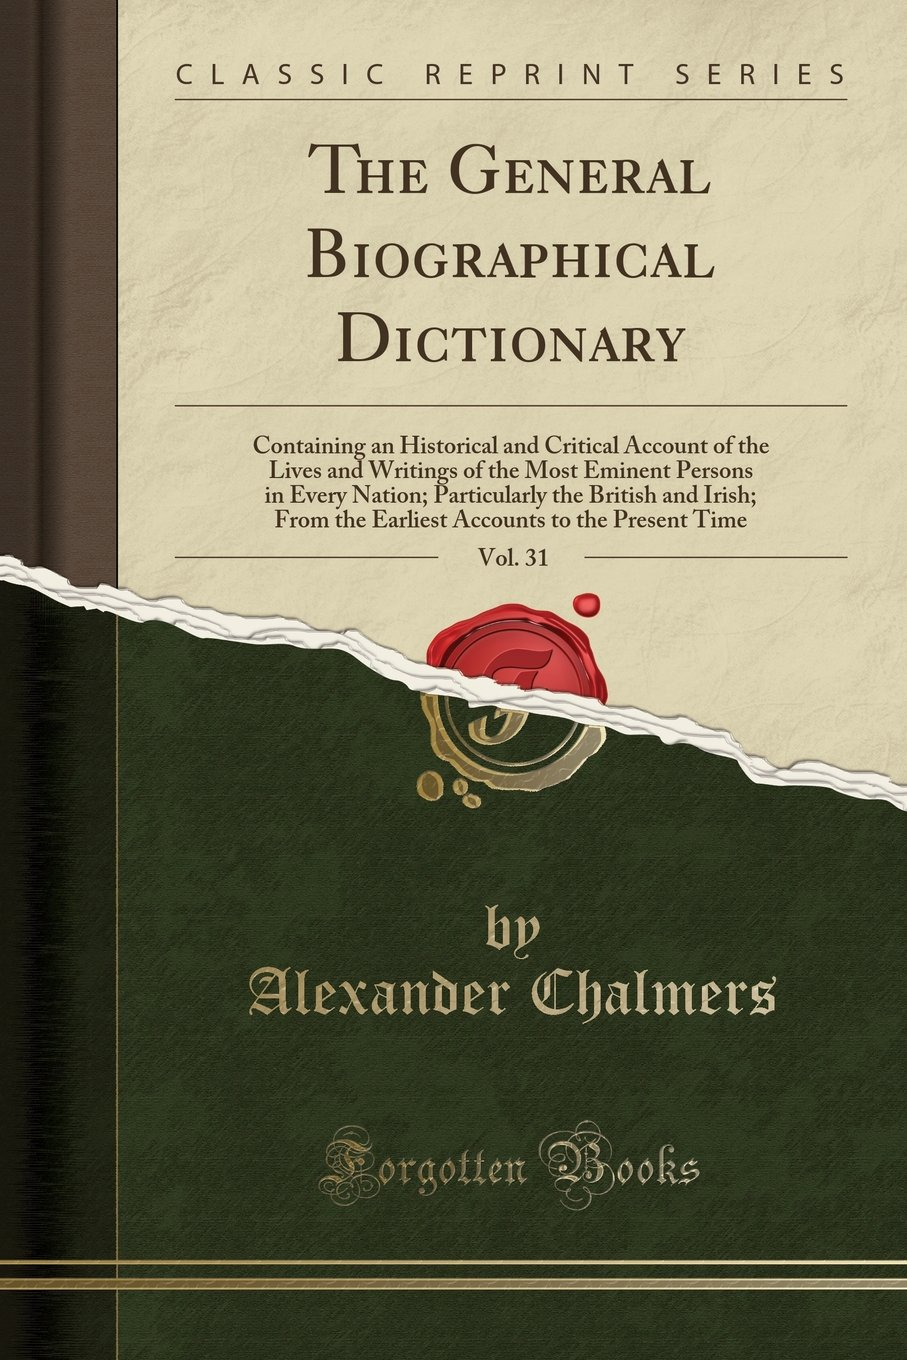 The General Biographical Dictionary, Vol. 31: Containing an Historical and Critical Account of the Lives and Writings of the Most Eminent Persons in ... the Earliest Accounts to the Present Time PDF ePub book